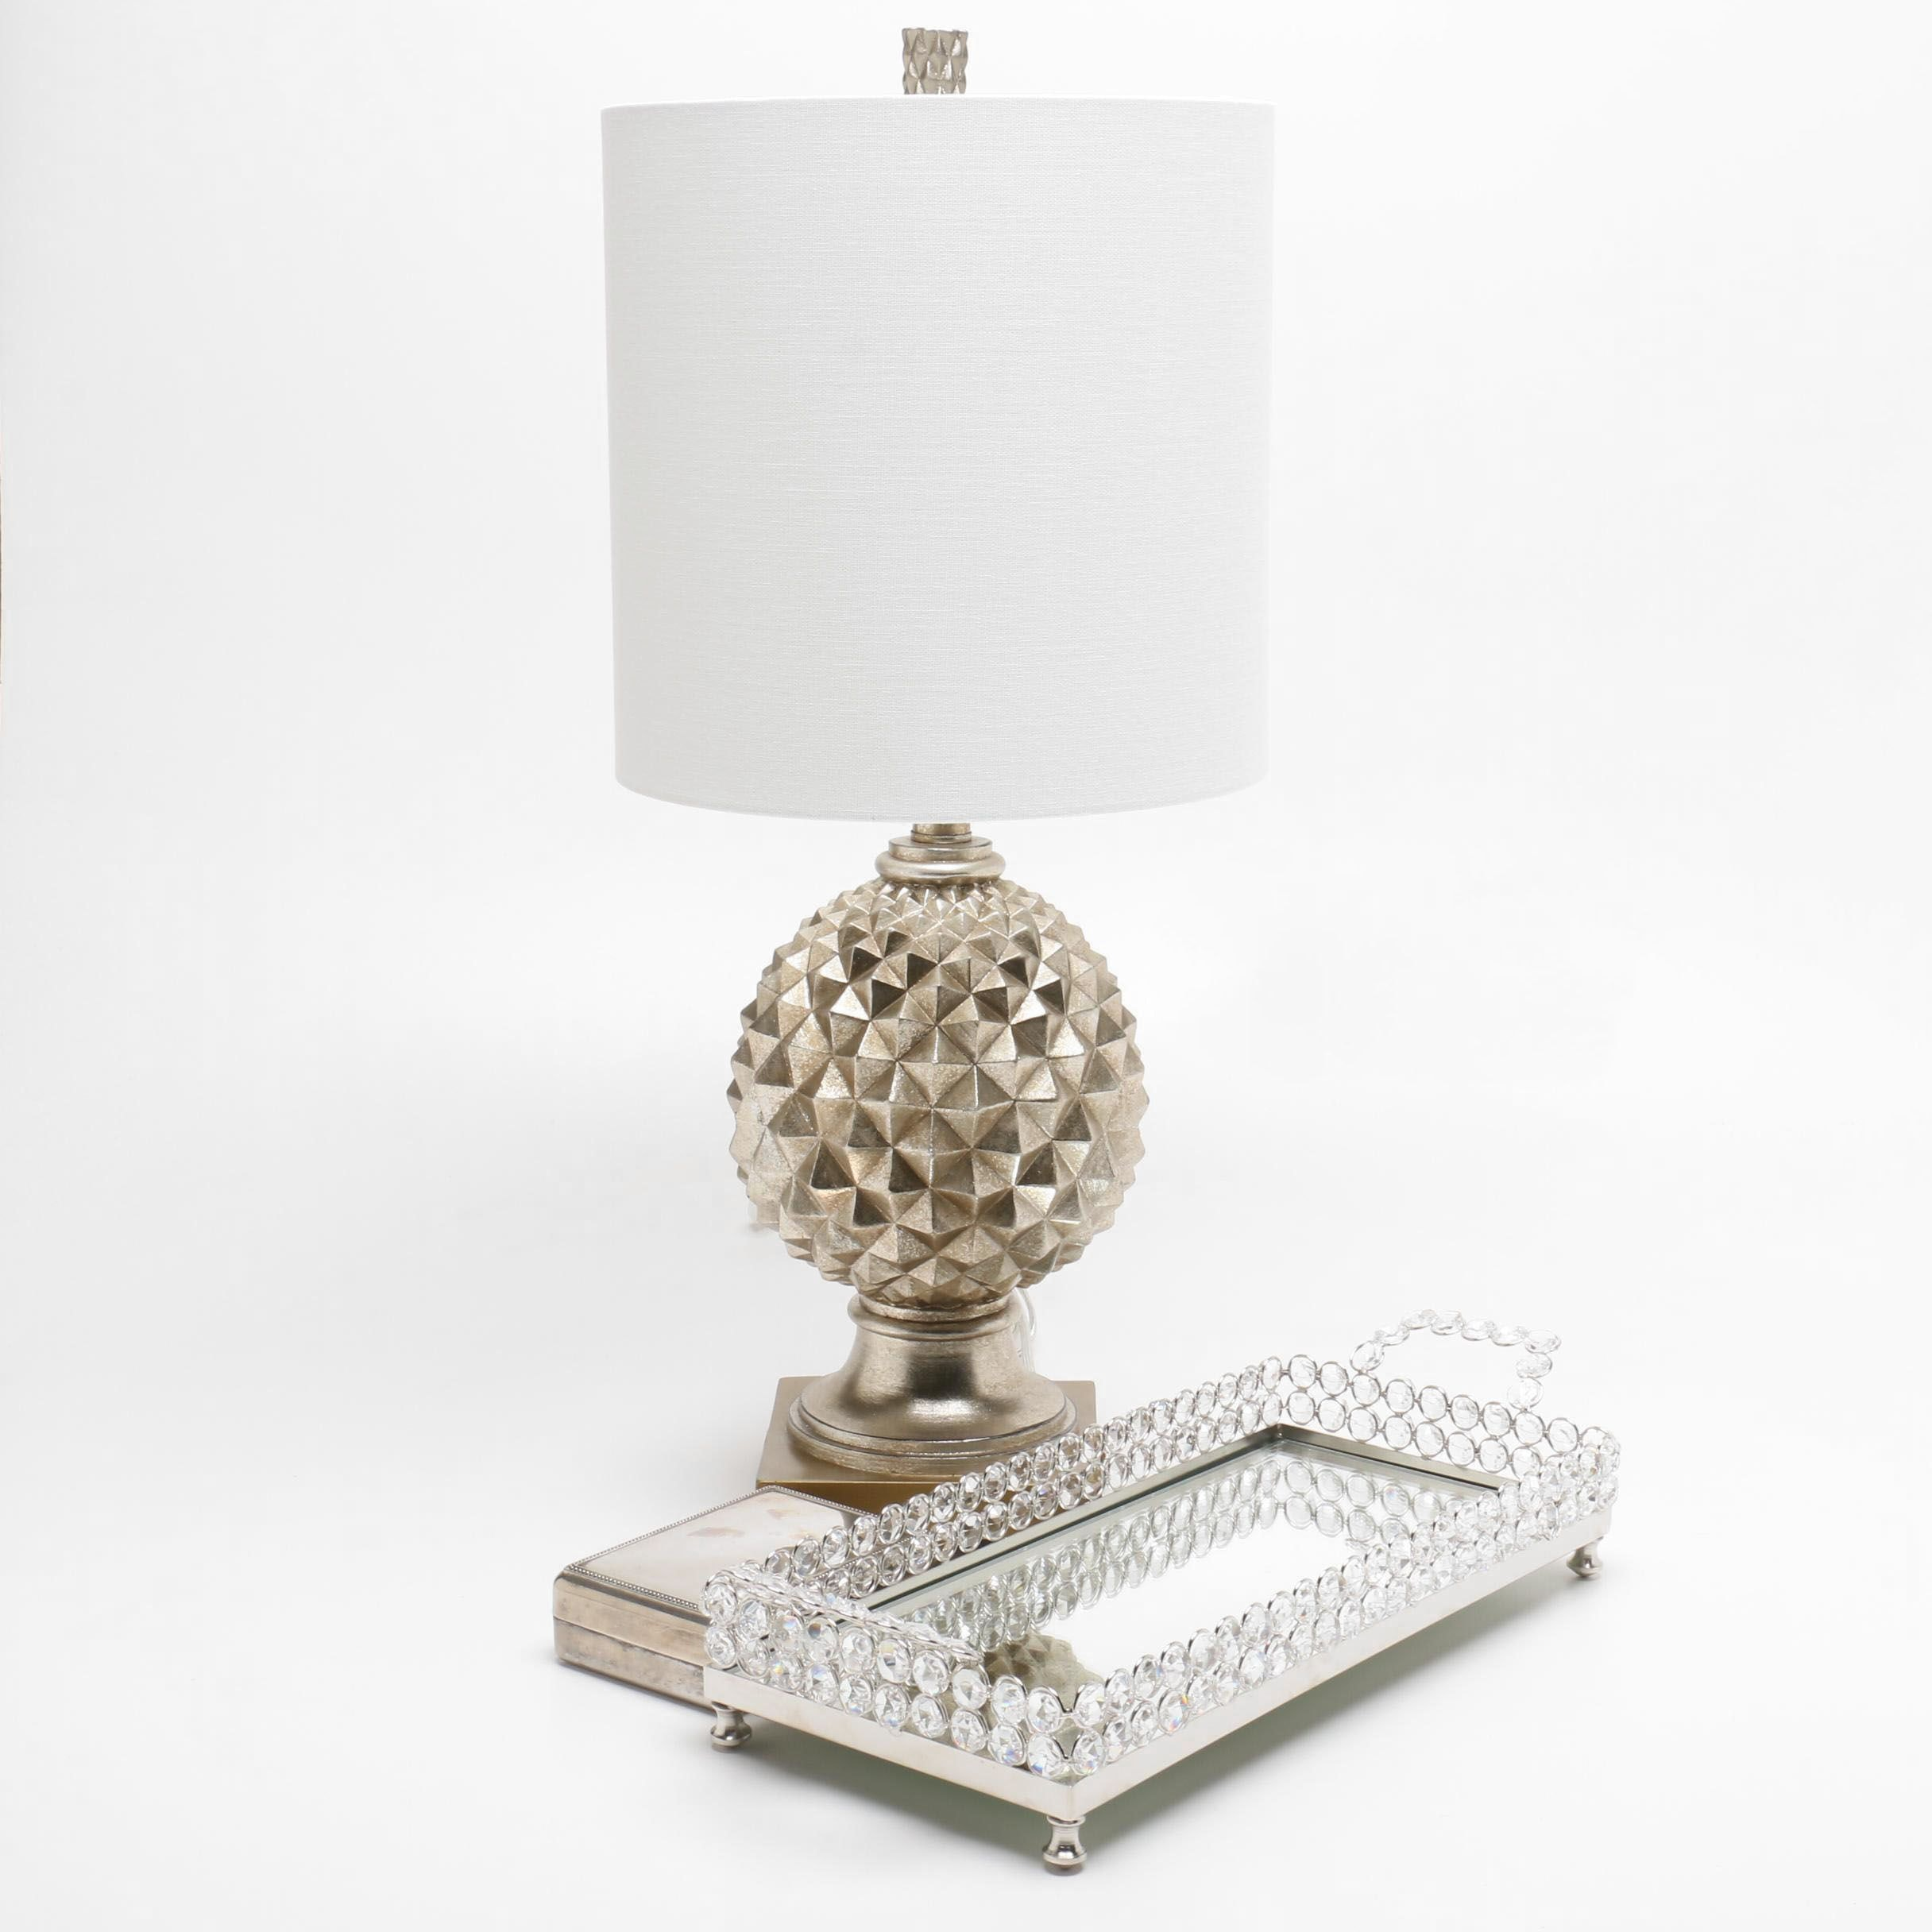 Table Lamp, Mirrored Tray, and Vanity Box